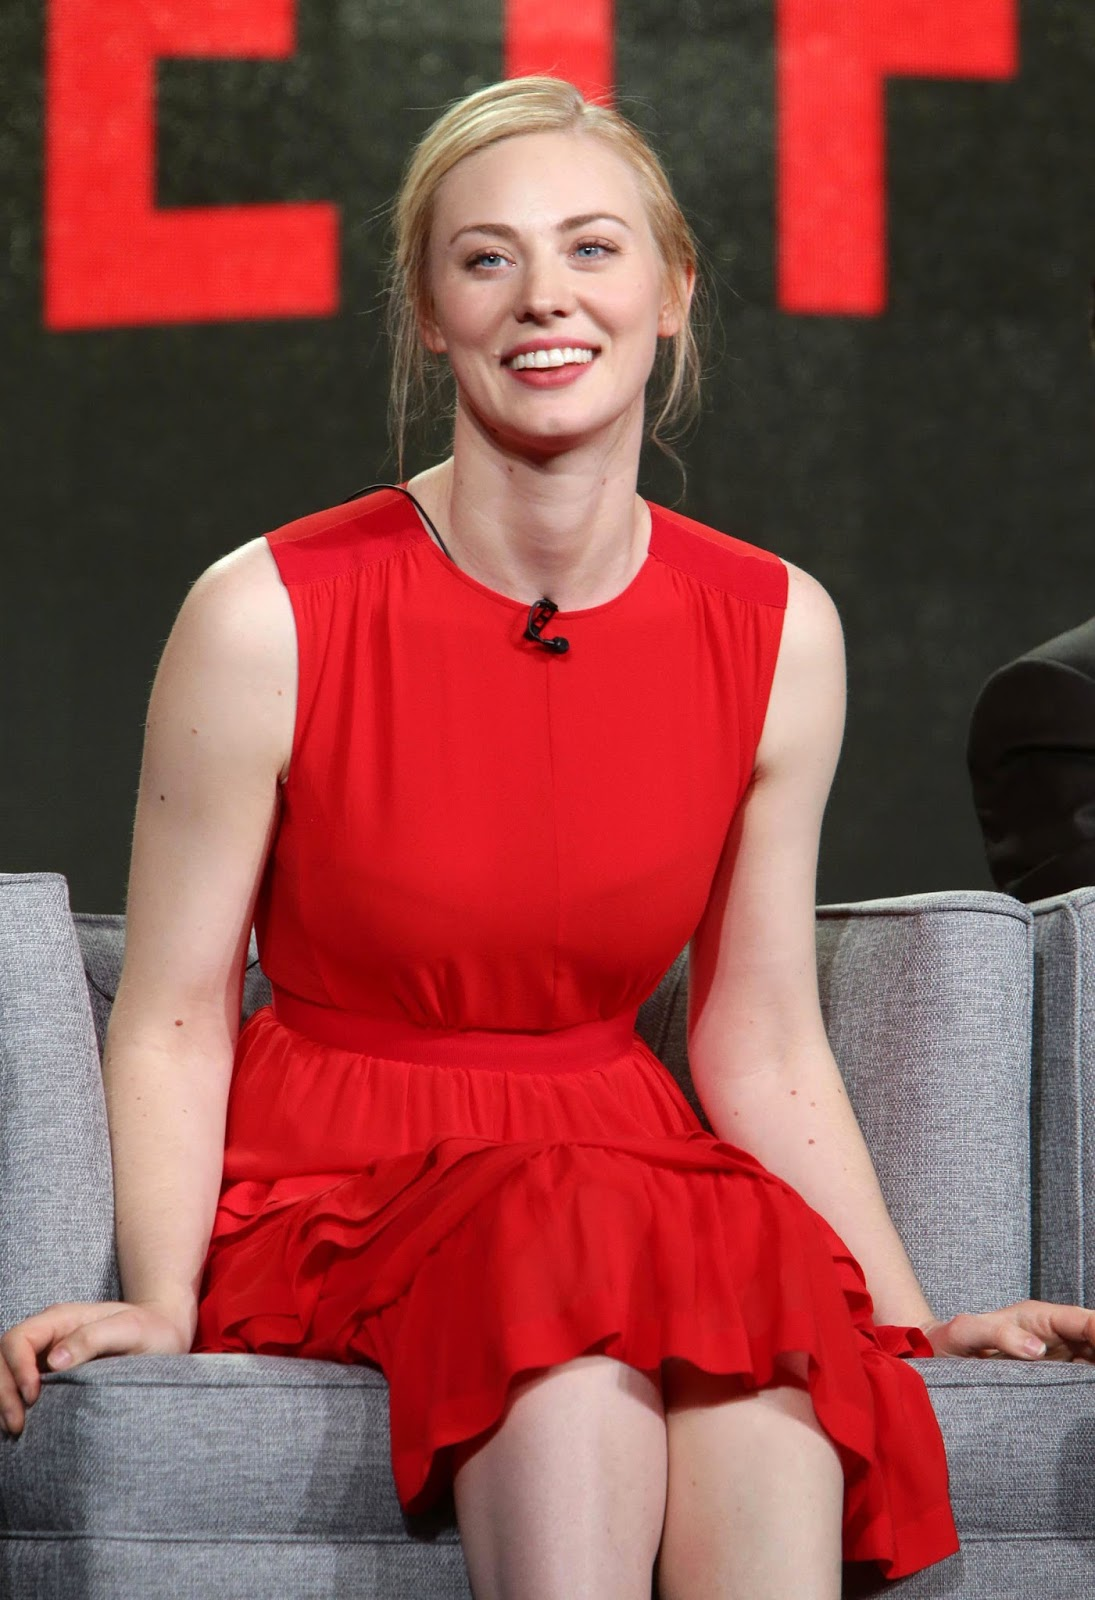 Deborah Ann Woll Nudes Will Drink Your Blood (50 PICS)